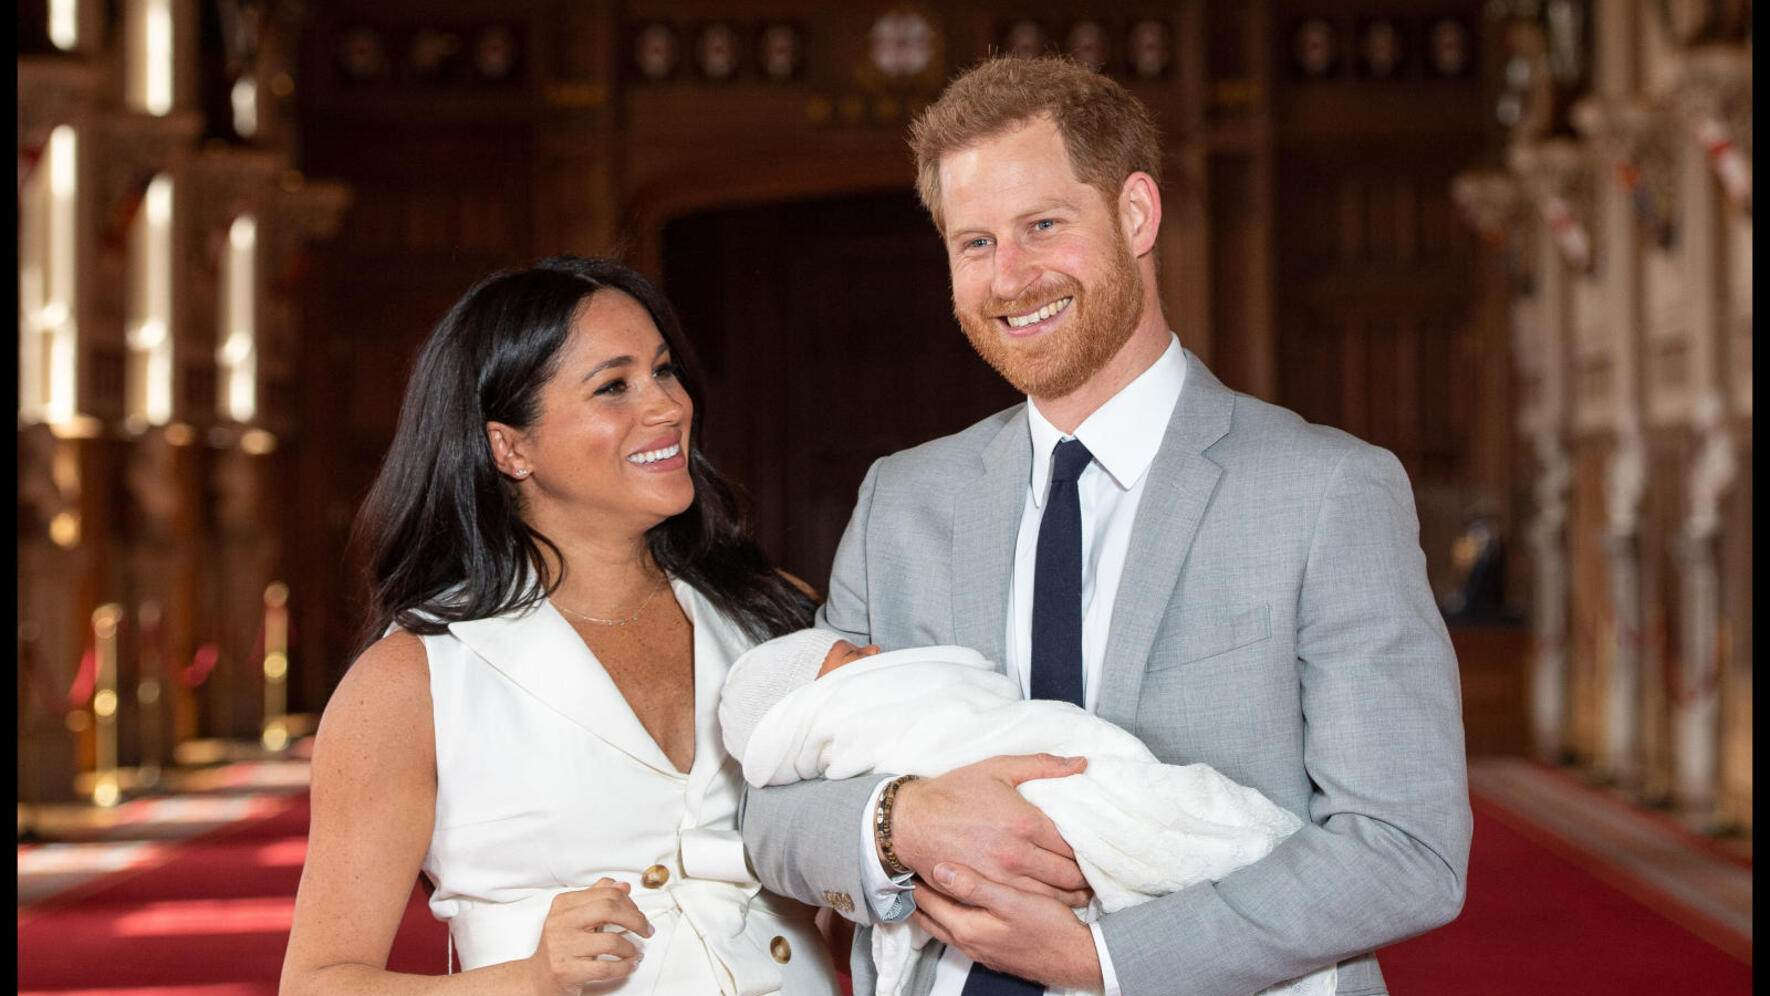 May 8, 2019 - Windsor, Berkshire, United Kingdom: Prince Harry and Meghan, Duke and Duchess of Sussex, with their baby son, who was born on May 6 in the early morning, during a photocall in St George's Hall at Windsor Castle. (i-Images / Polaris) (FOTO:DUKAS/POLARIS)